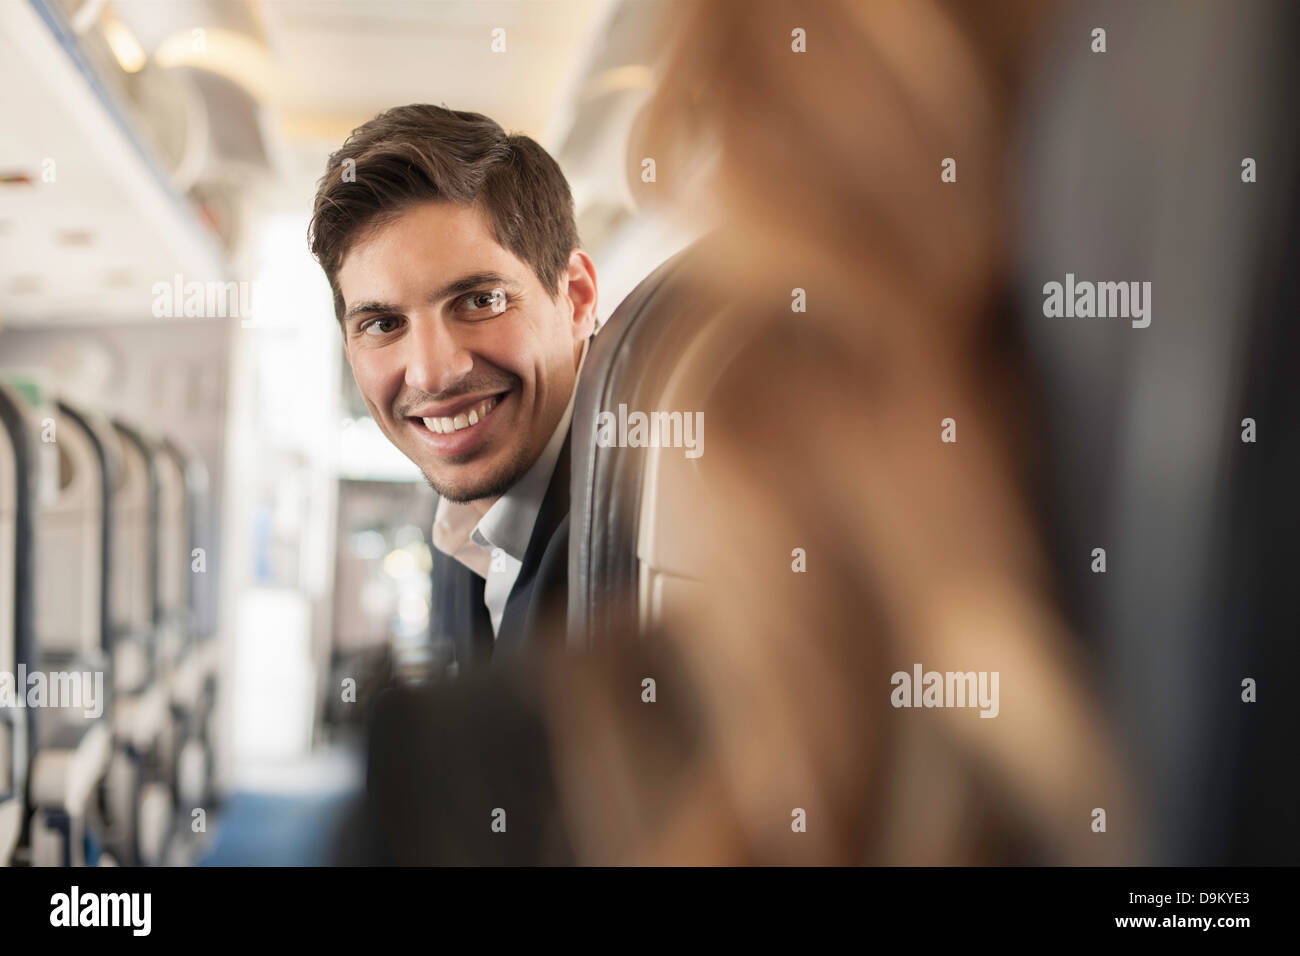 Male passenger turning around on aeroplane - Stock Image